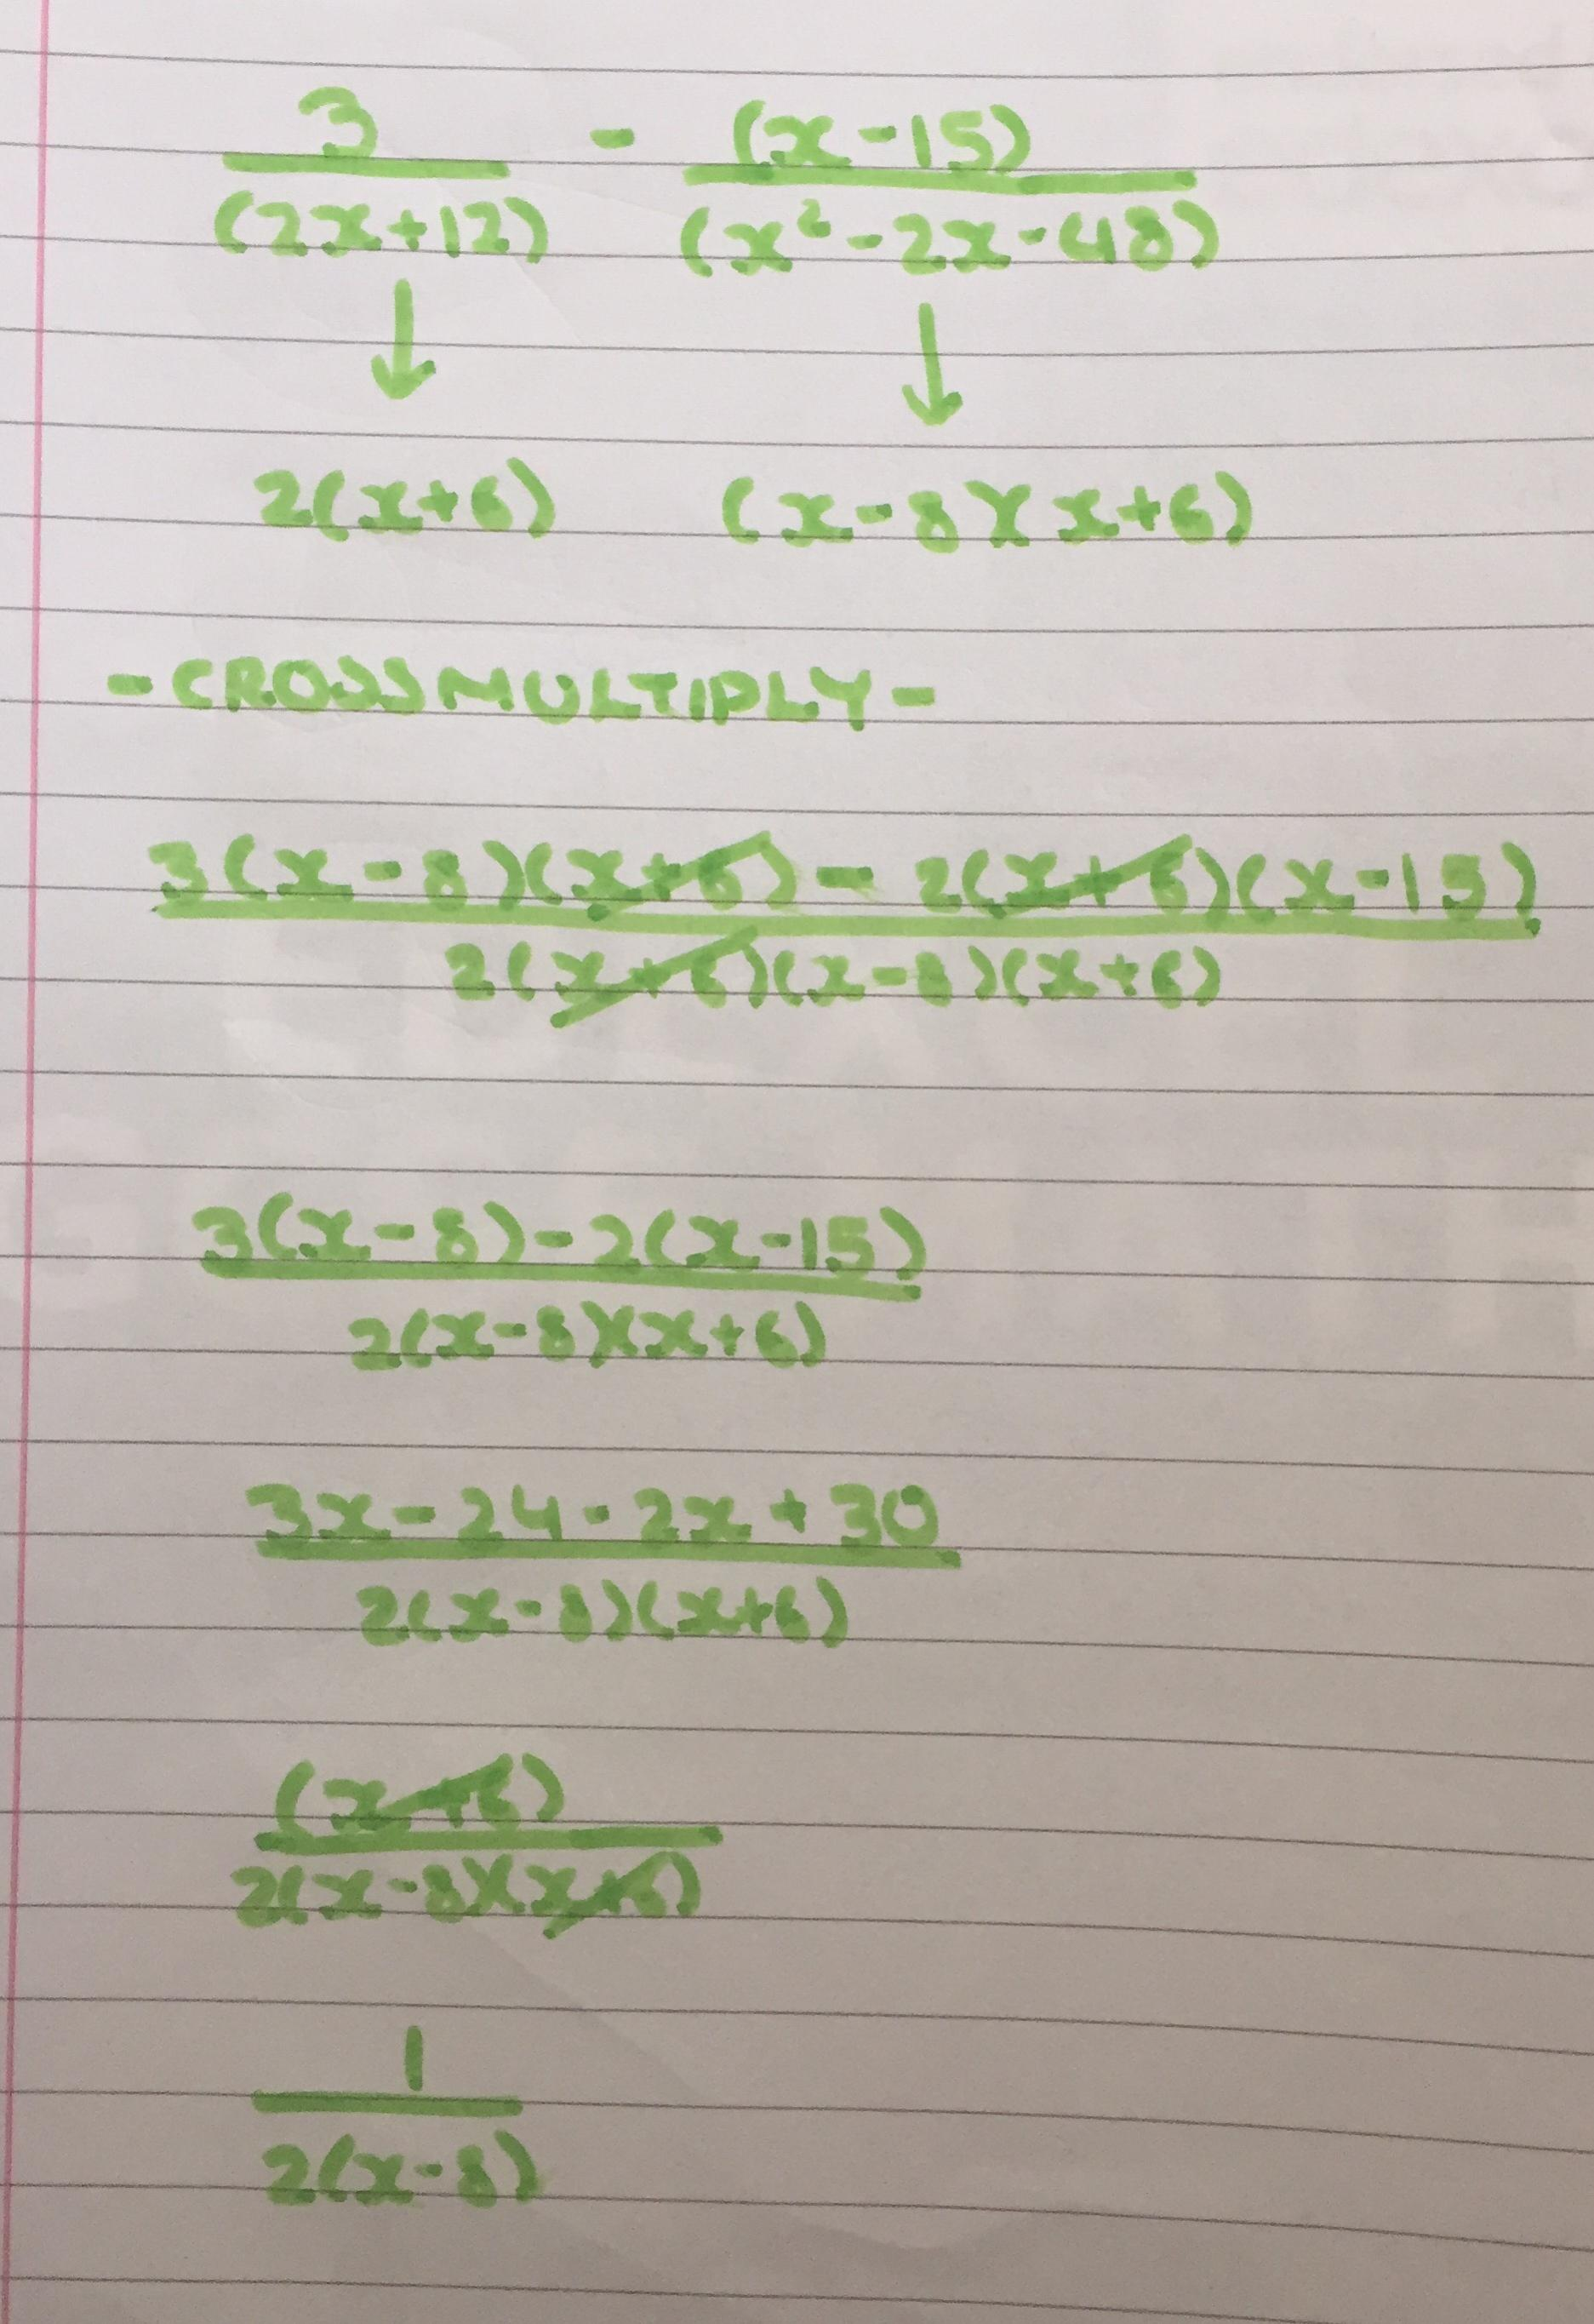 Edexcel iGCSE Maths 3H May 2017 Unofficial Mark Scheme